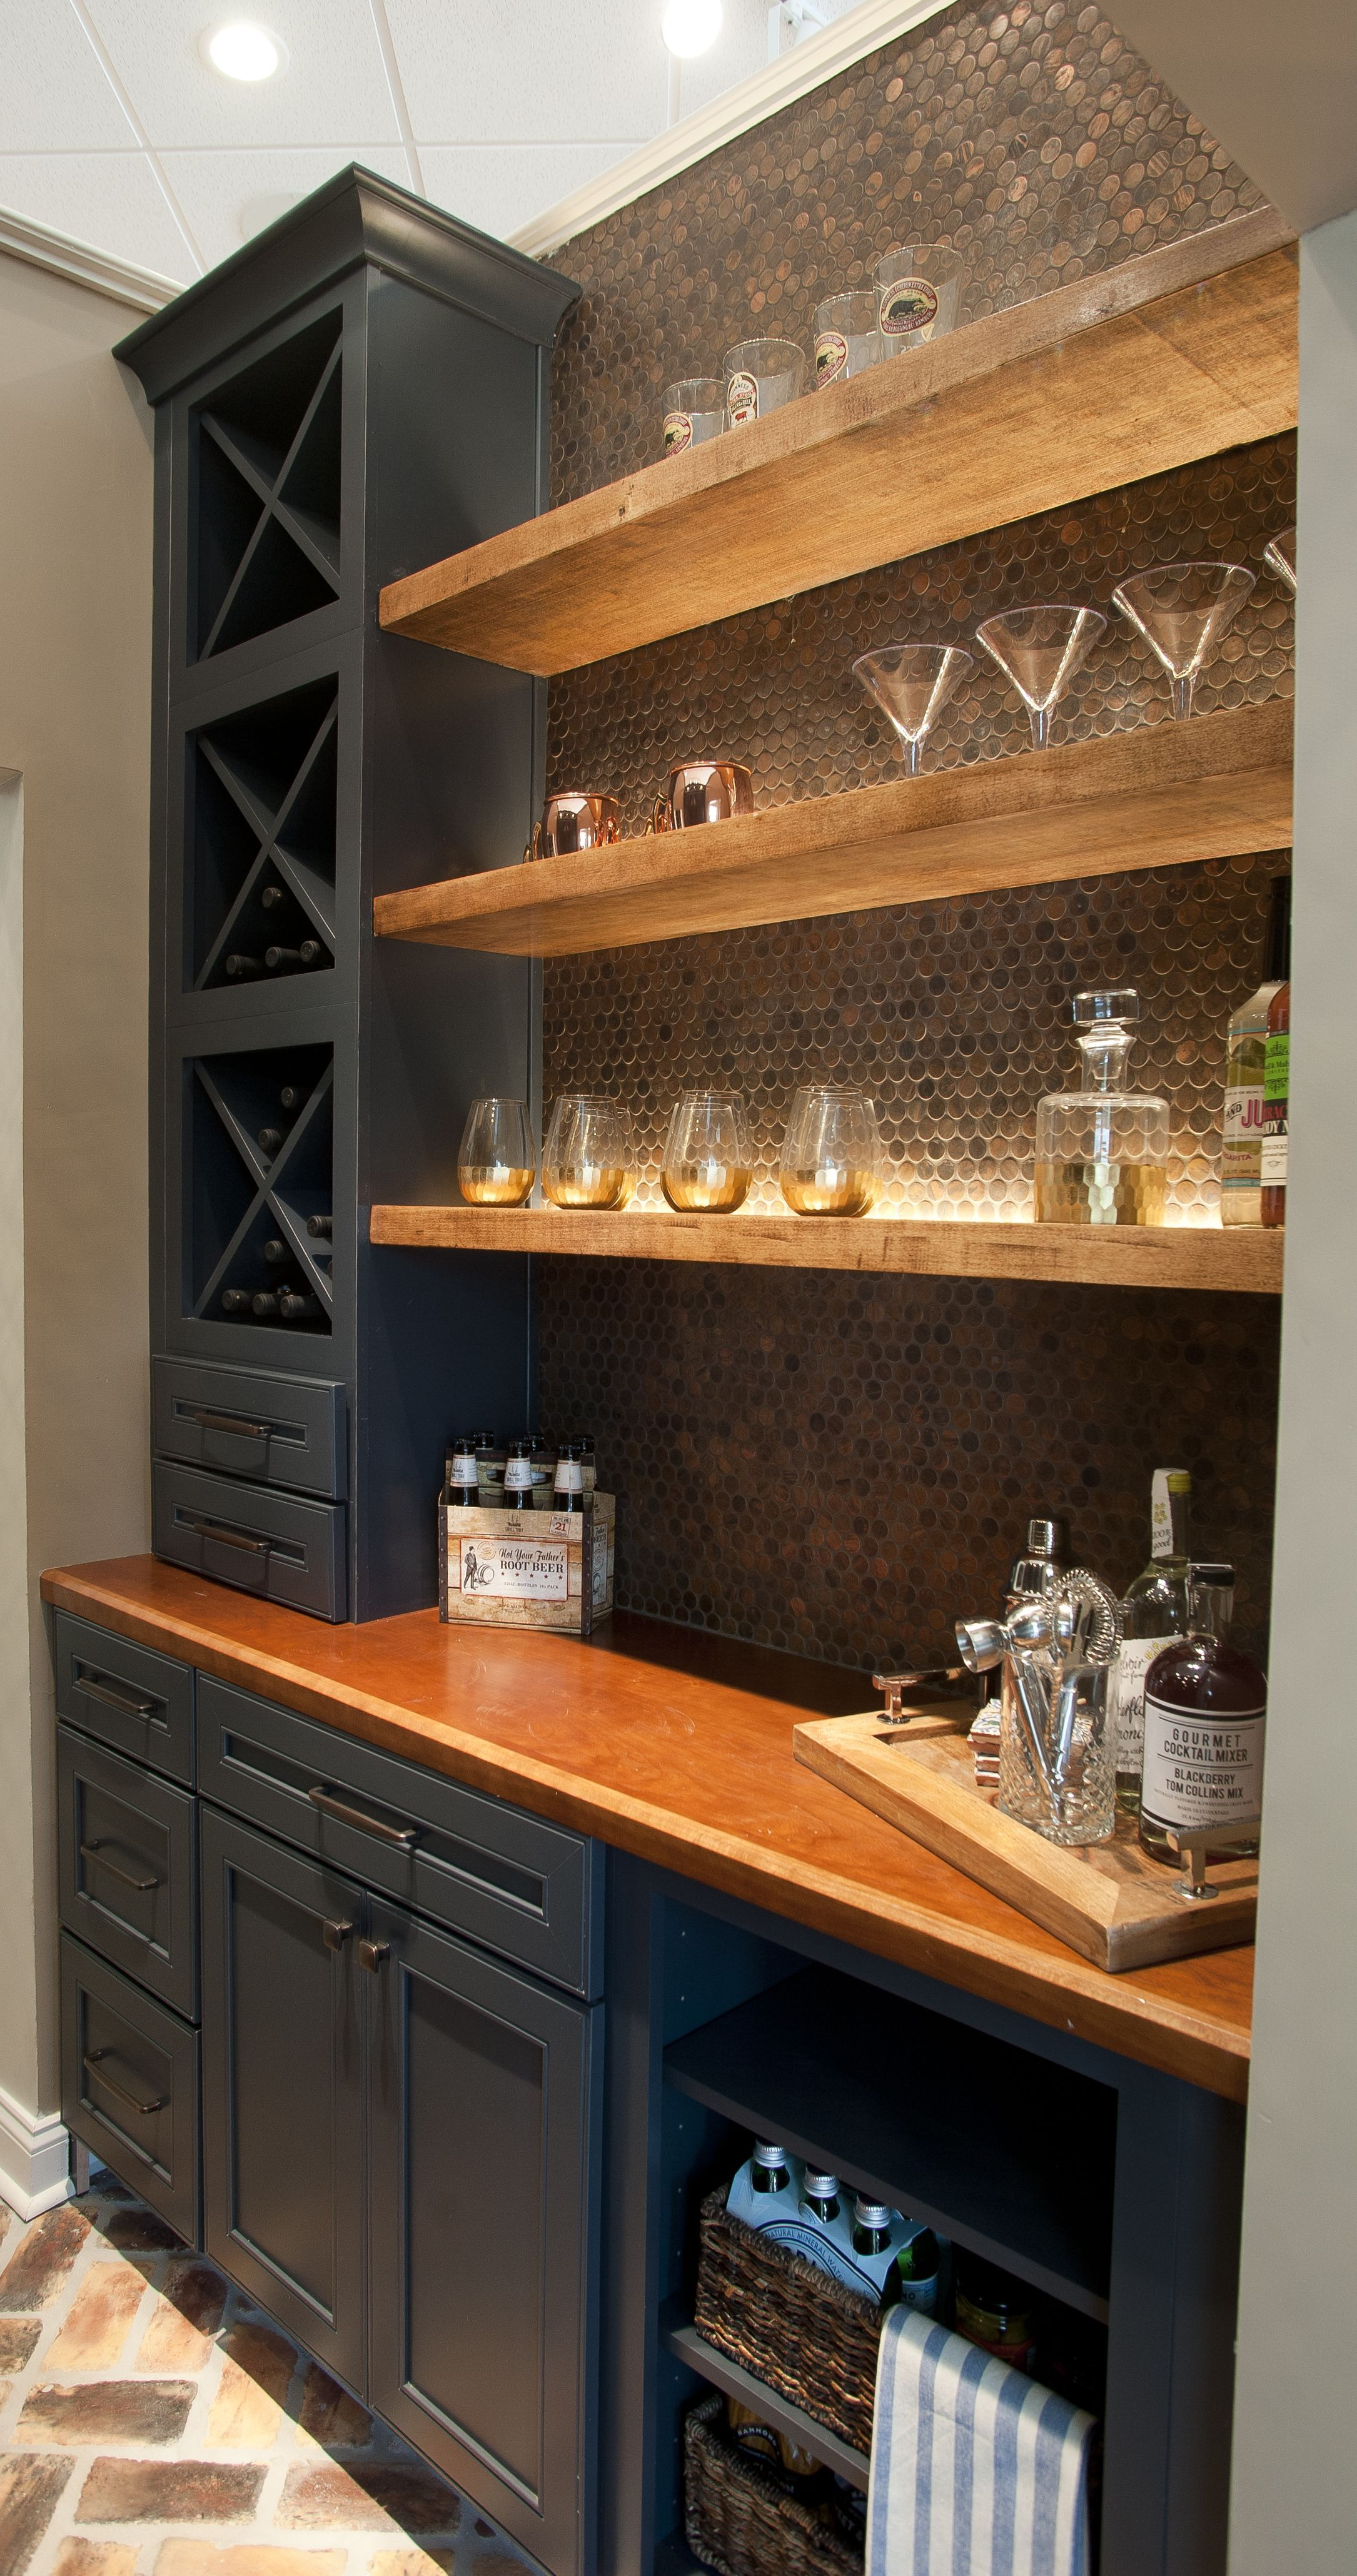 99 Insanely Cool Basement Bar Ideas for Your Home basement bar ideas diy basement bar ideas basement bar ideas pinterest. Click here for more ideas!!! & 34+ Awesome Basement Bar Ideas and How To Make It With Low Bugdet ...